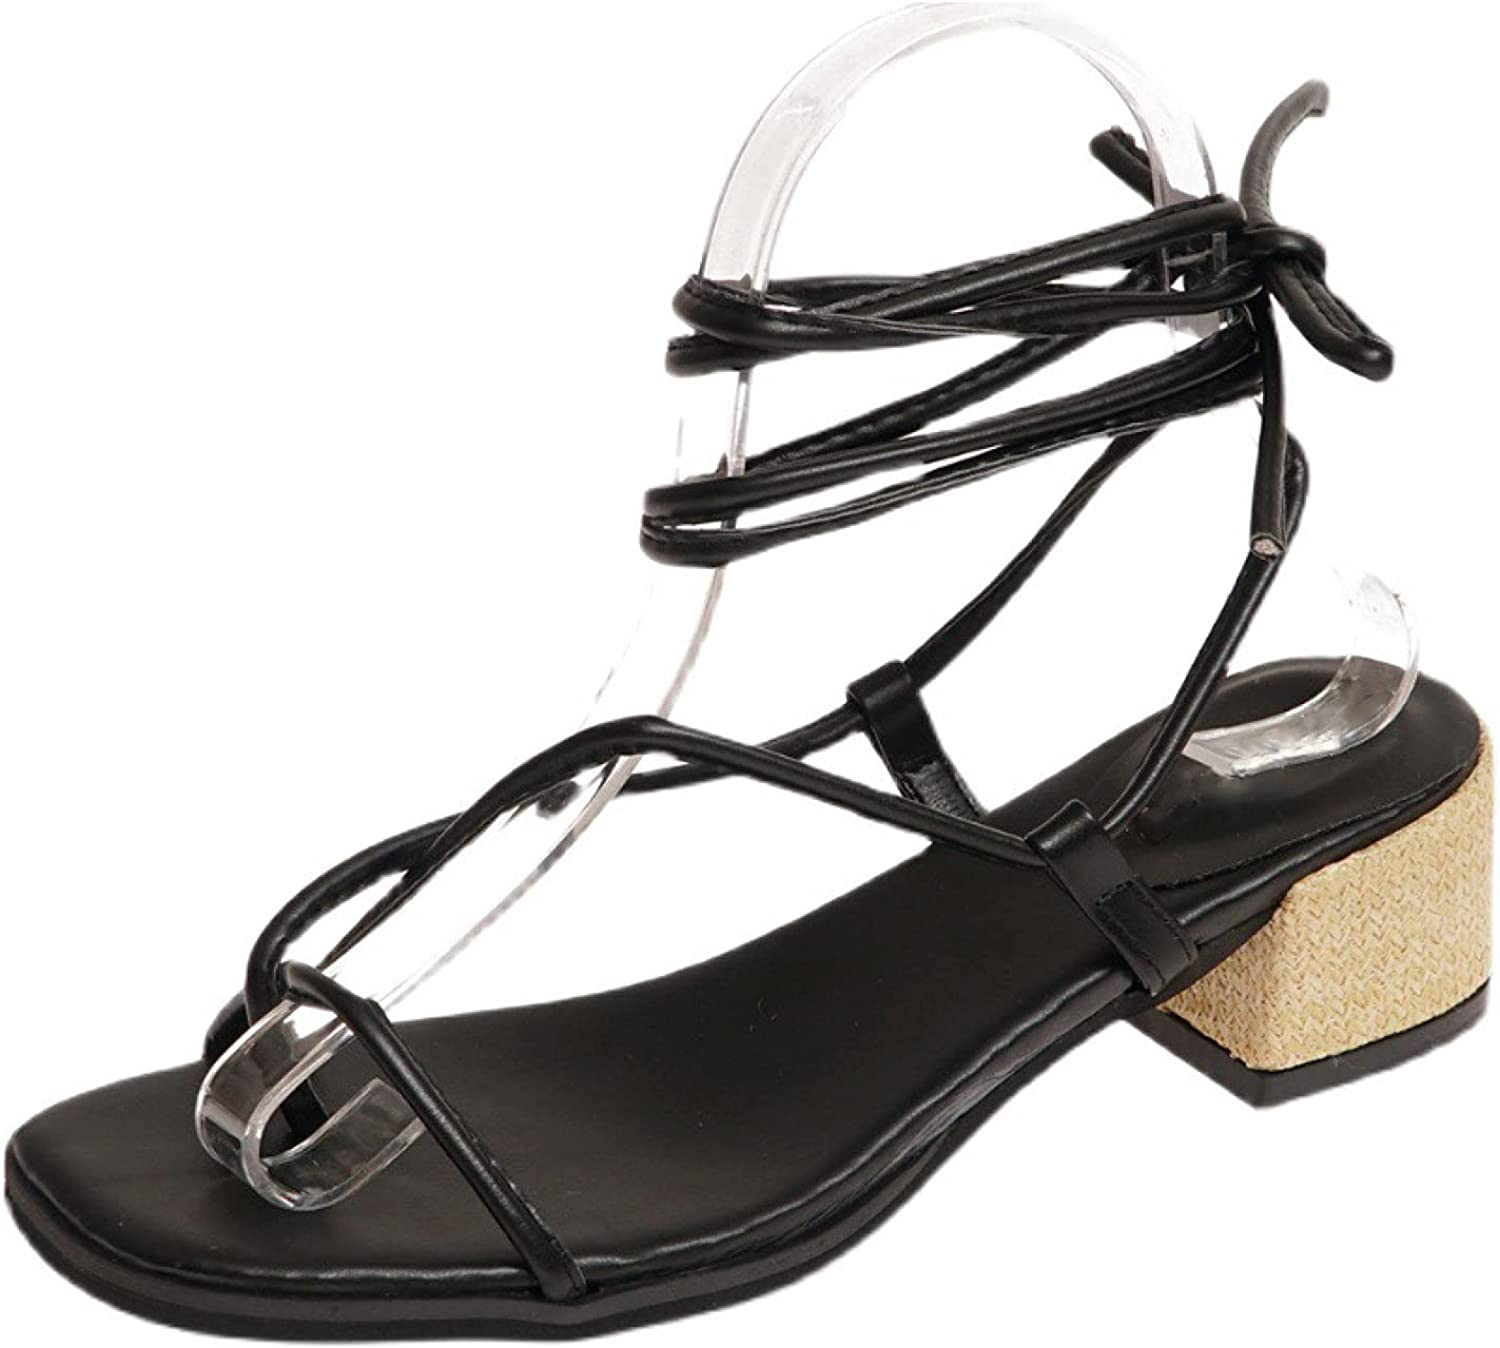 Women Weaves Heels Sandals Discount mail order Strappy W Clip Square Toe store Fashion